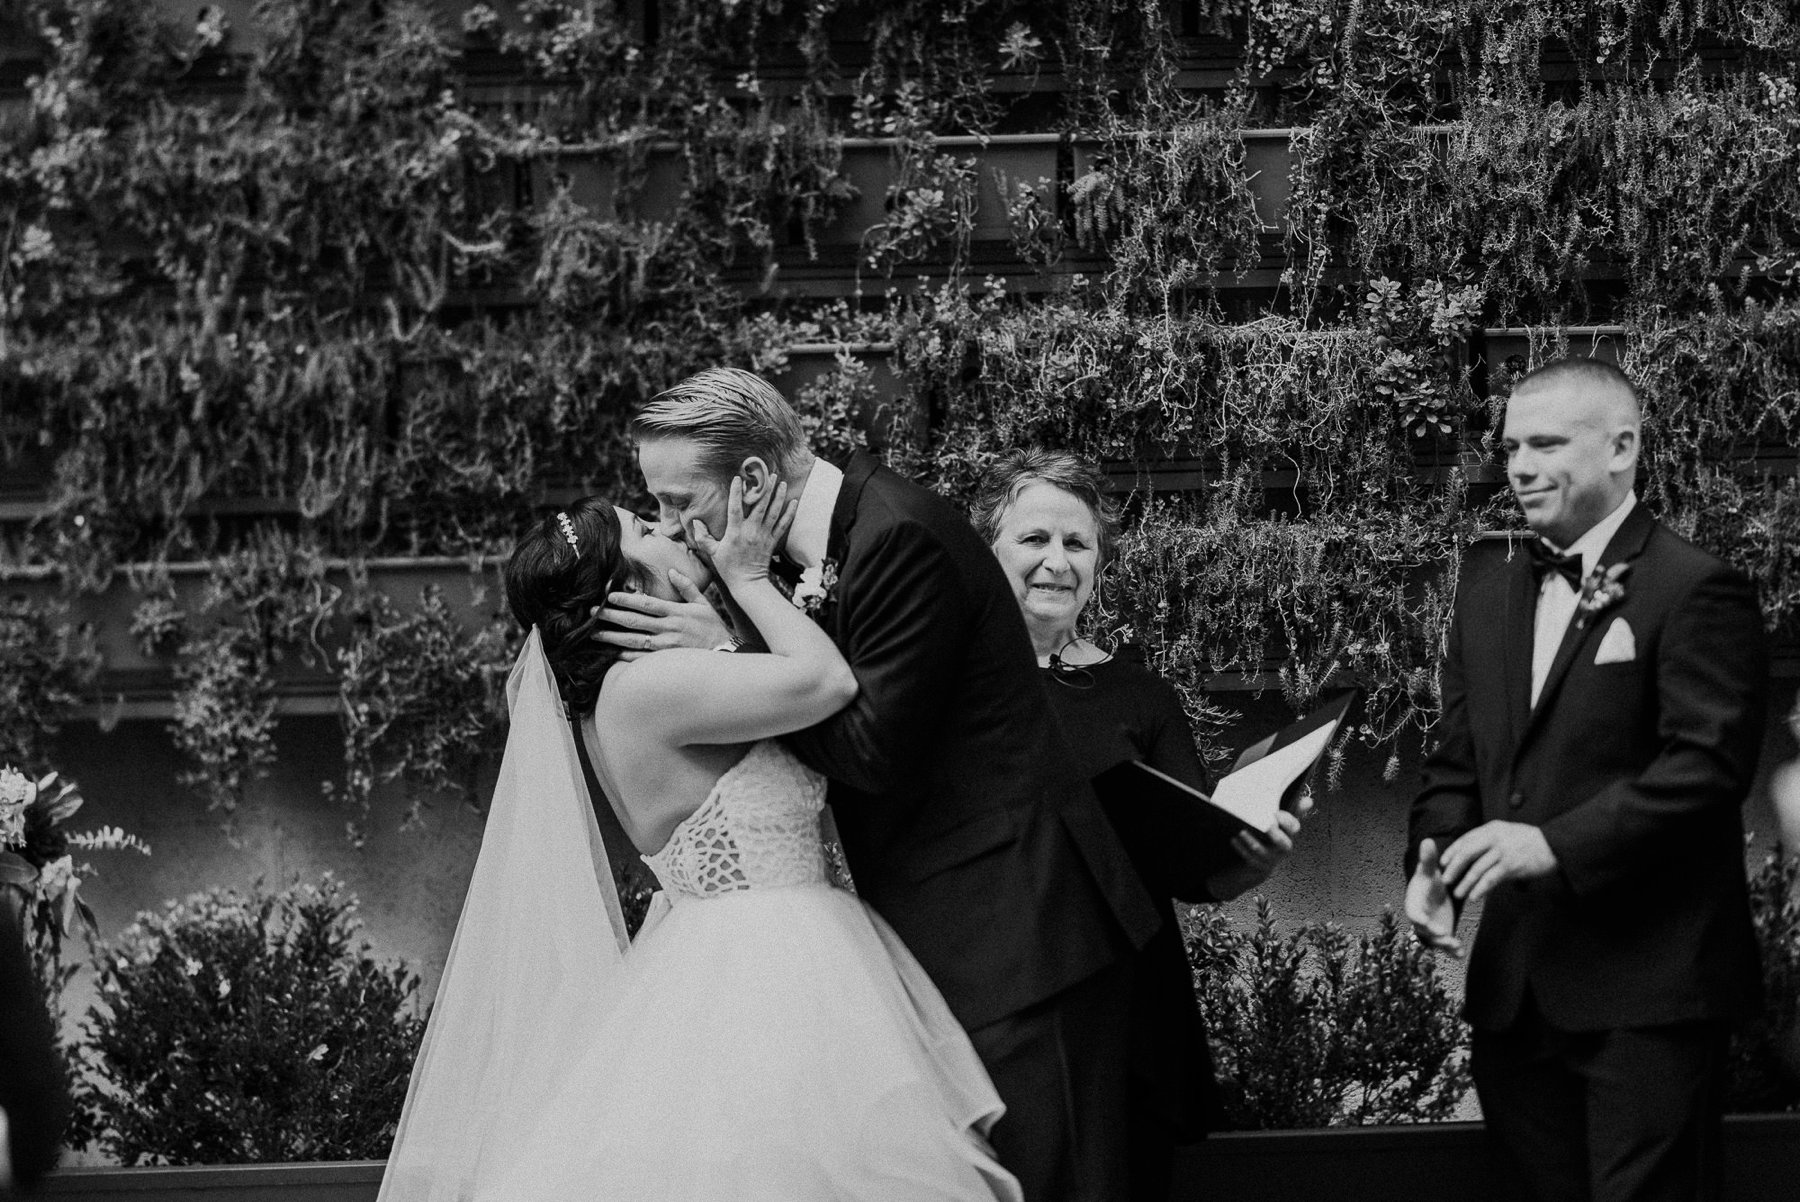 excelsior_lancaster_wedding_photographeer-047.jpg